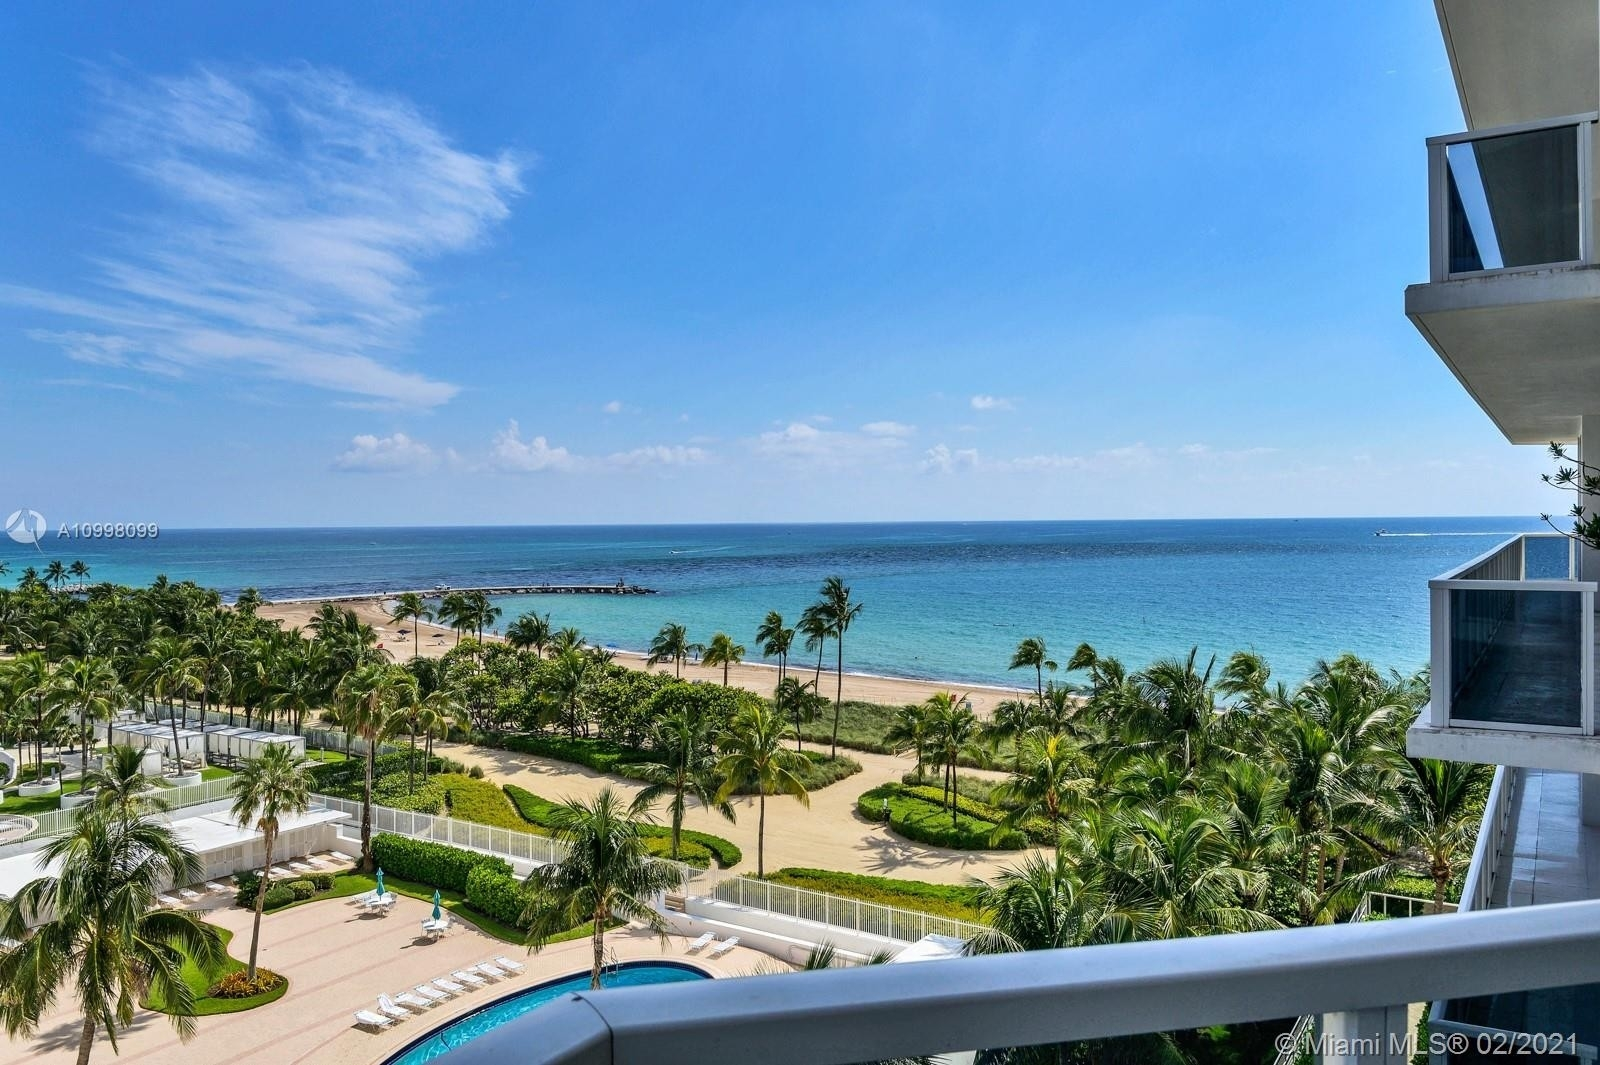 Property at 10225 Collins Ave , 503 Bal Harbour, FL 33154